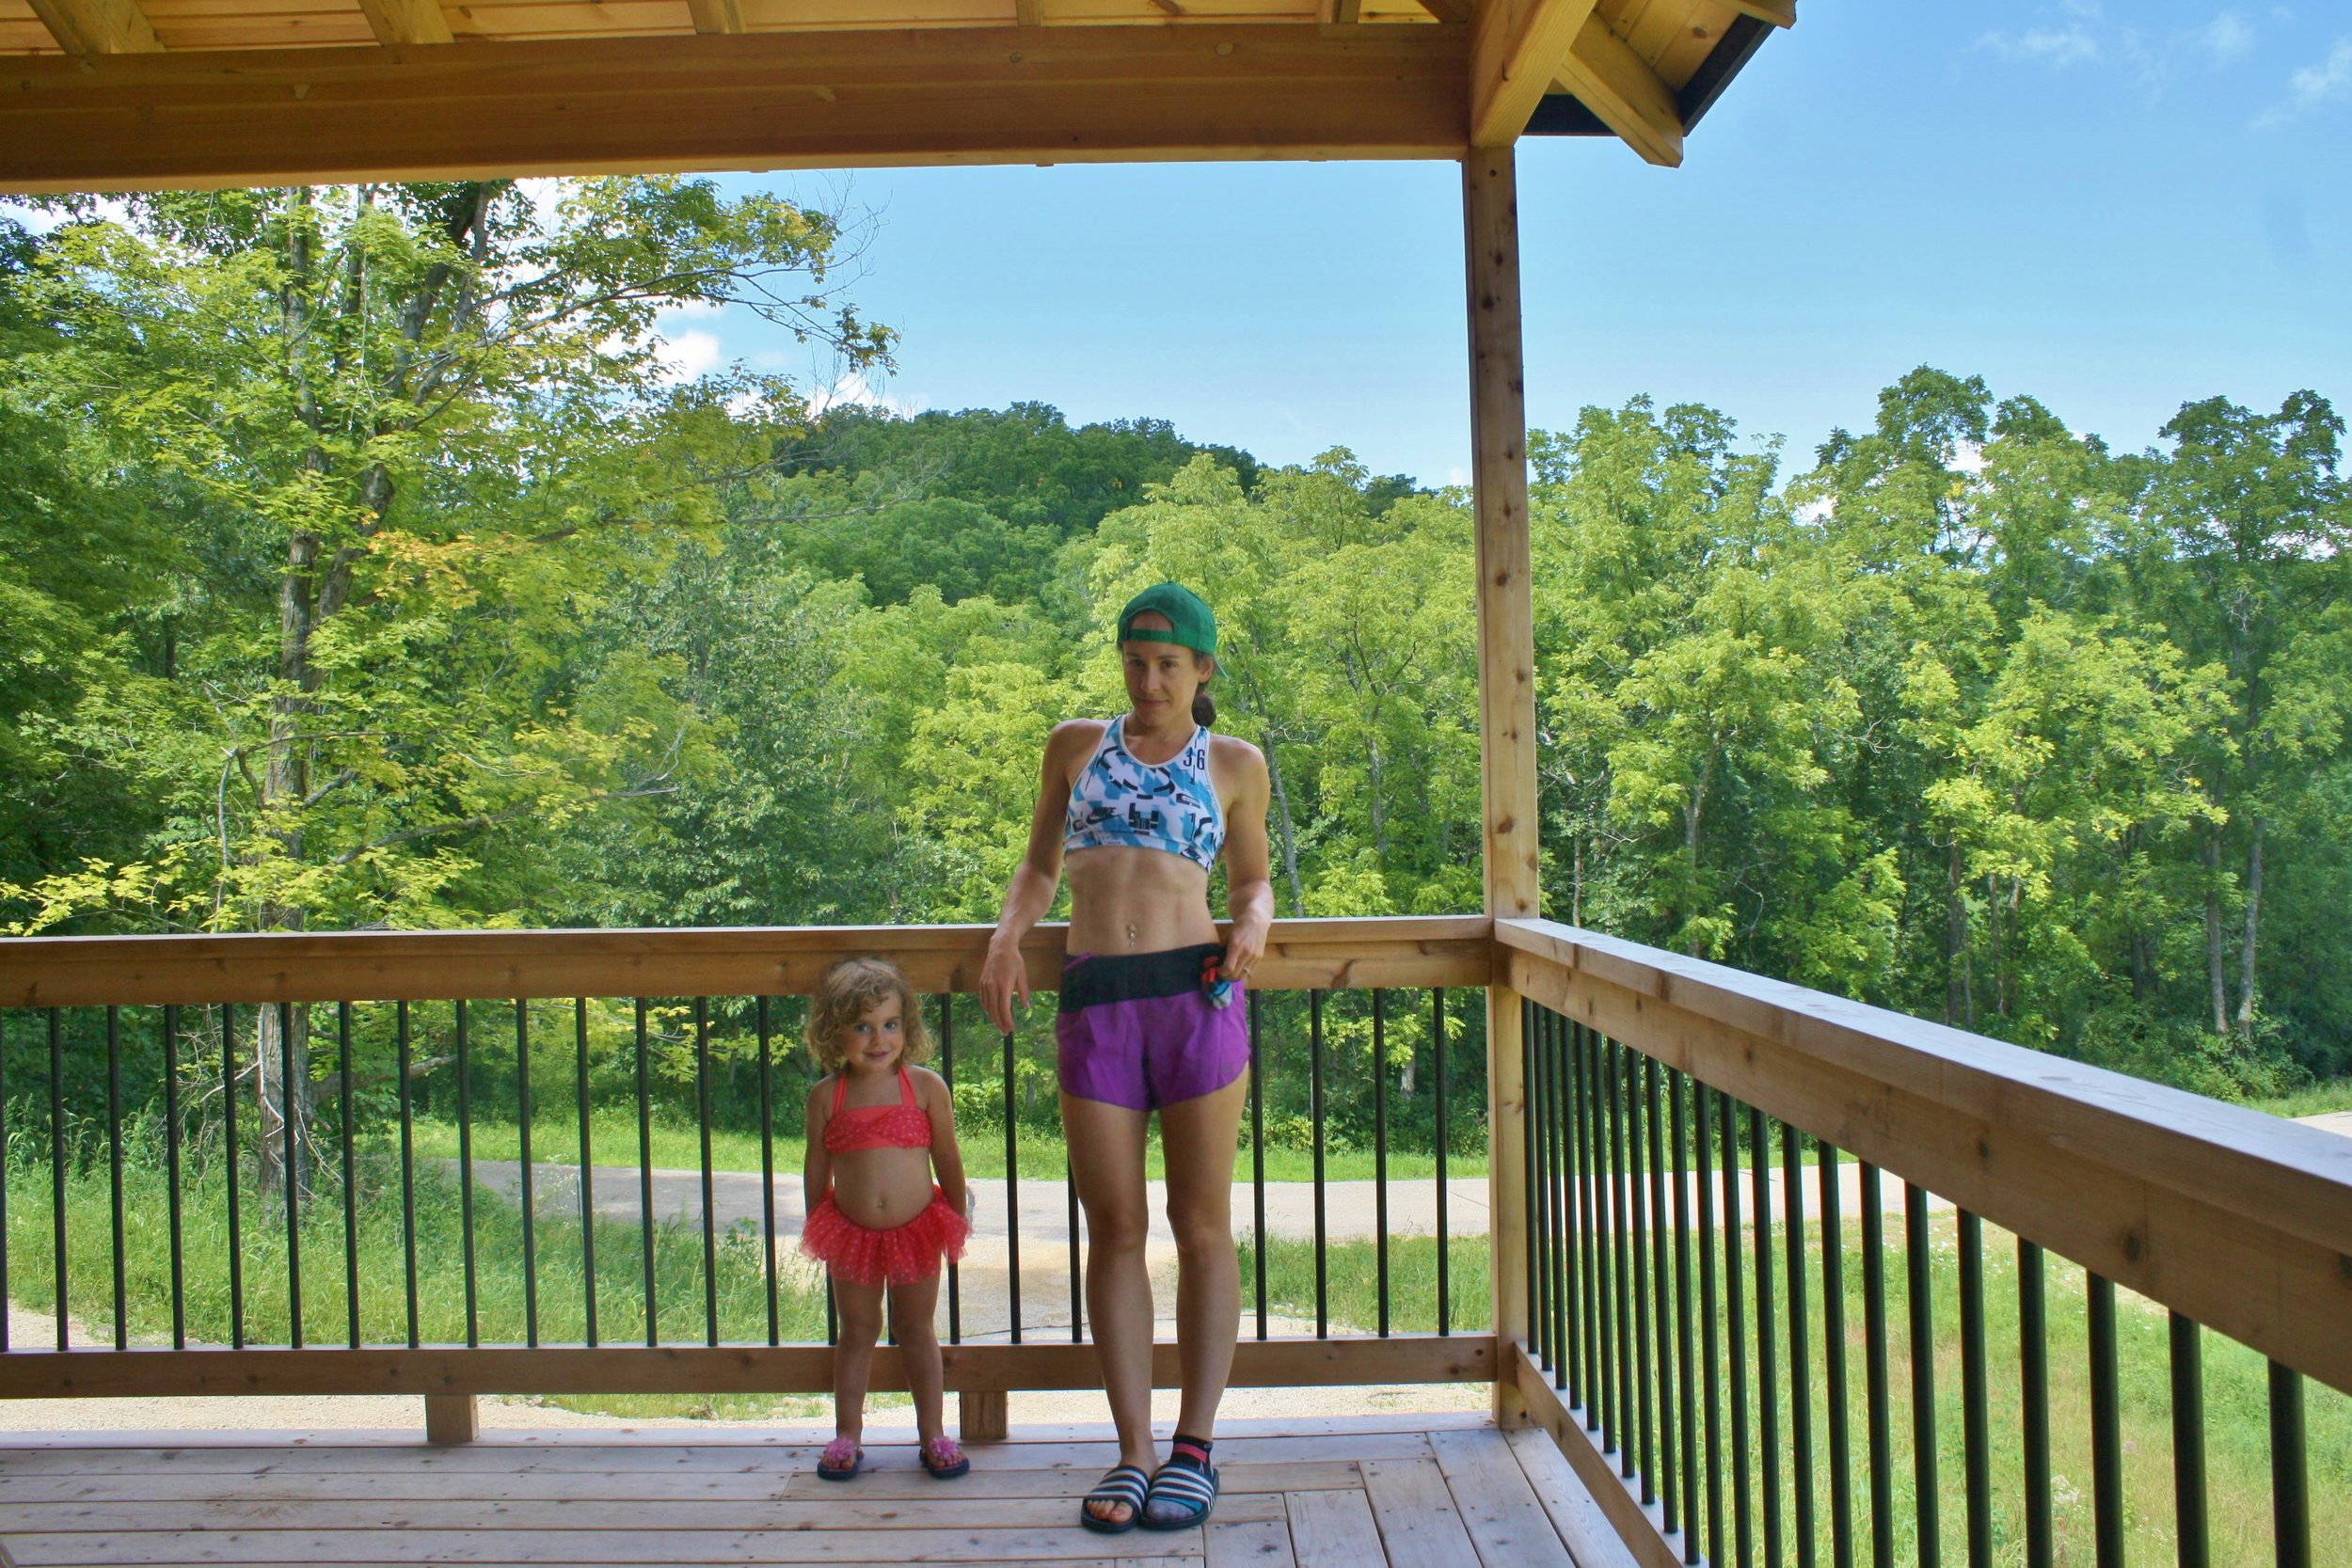 On the deck of our new house with Mischa. Now we live only a mile from Blue Mound State Park with has great trails!